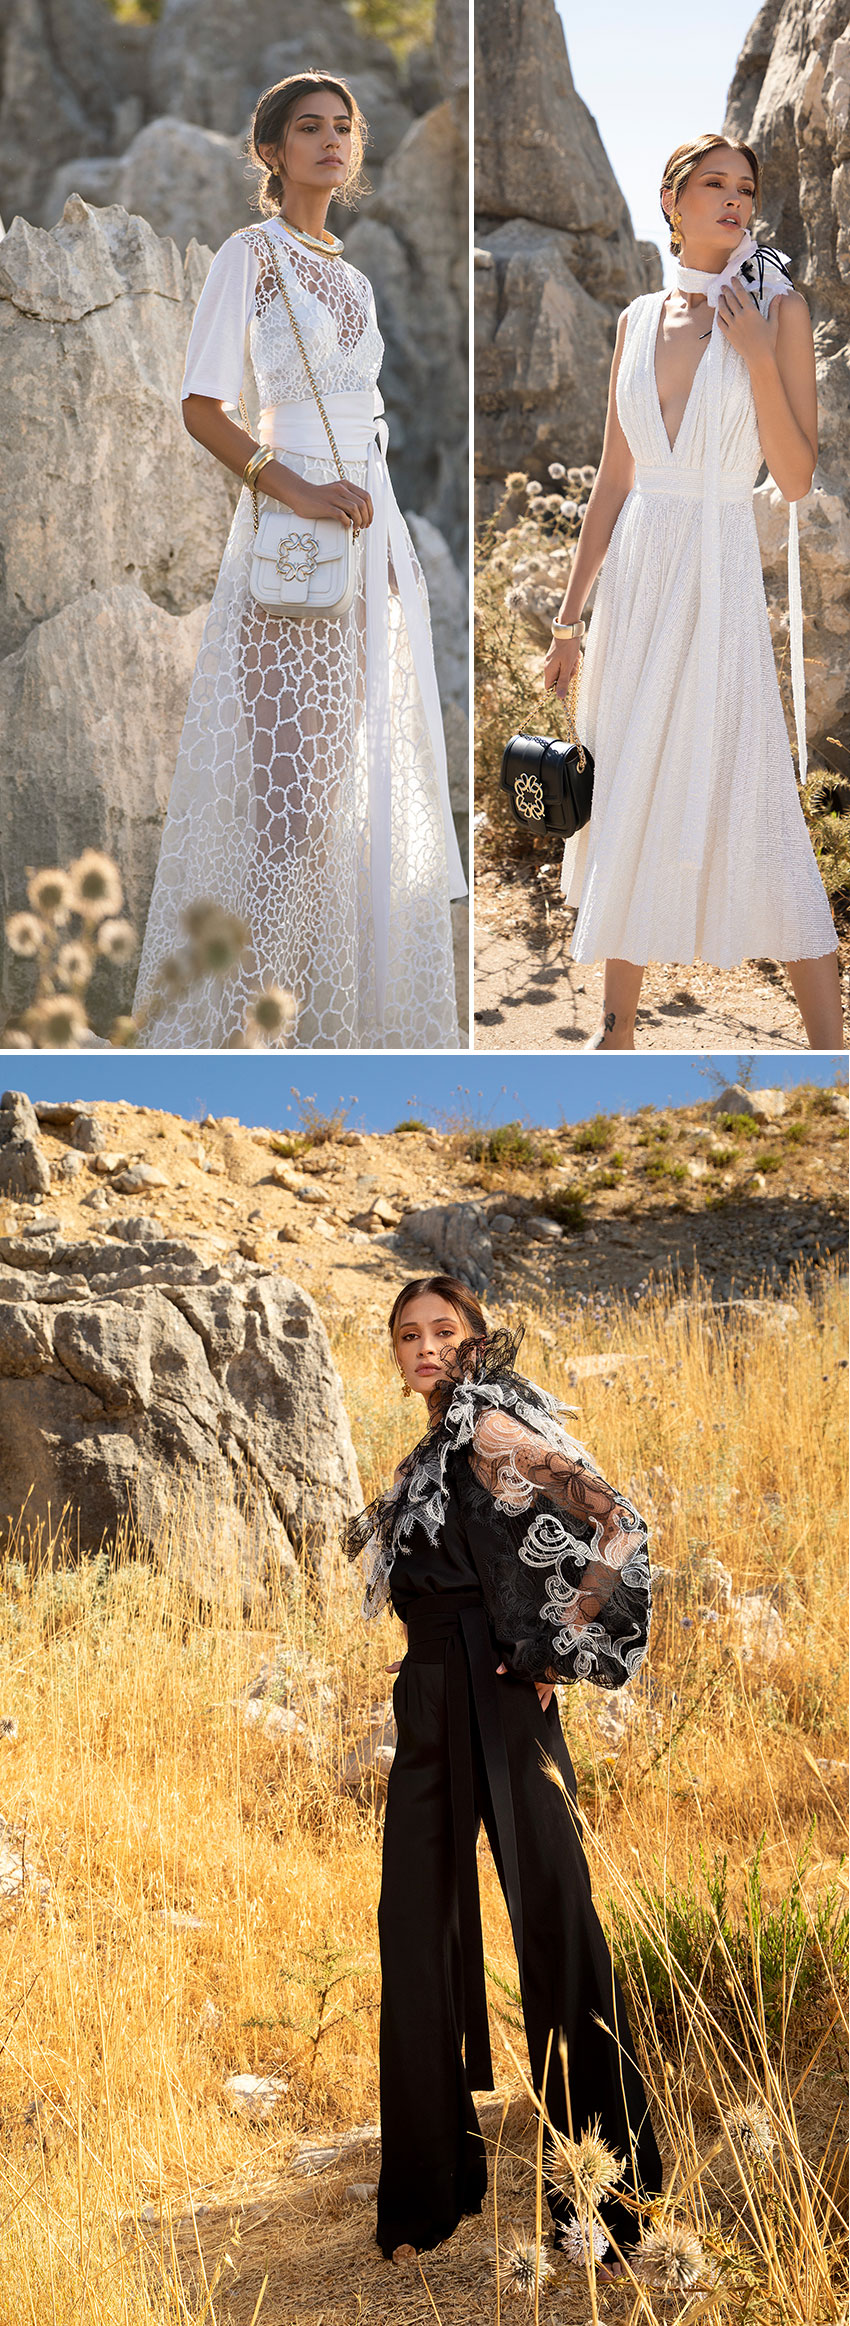 Elie Saab Ready-to-Wear Spring Summer 2021 embodies the spirited woman as she awakens from seclusion in Perfect Wedding Magazine